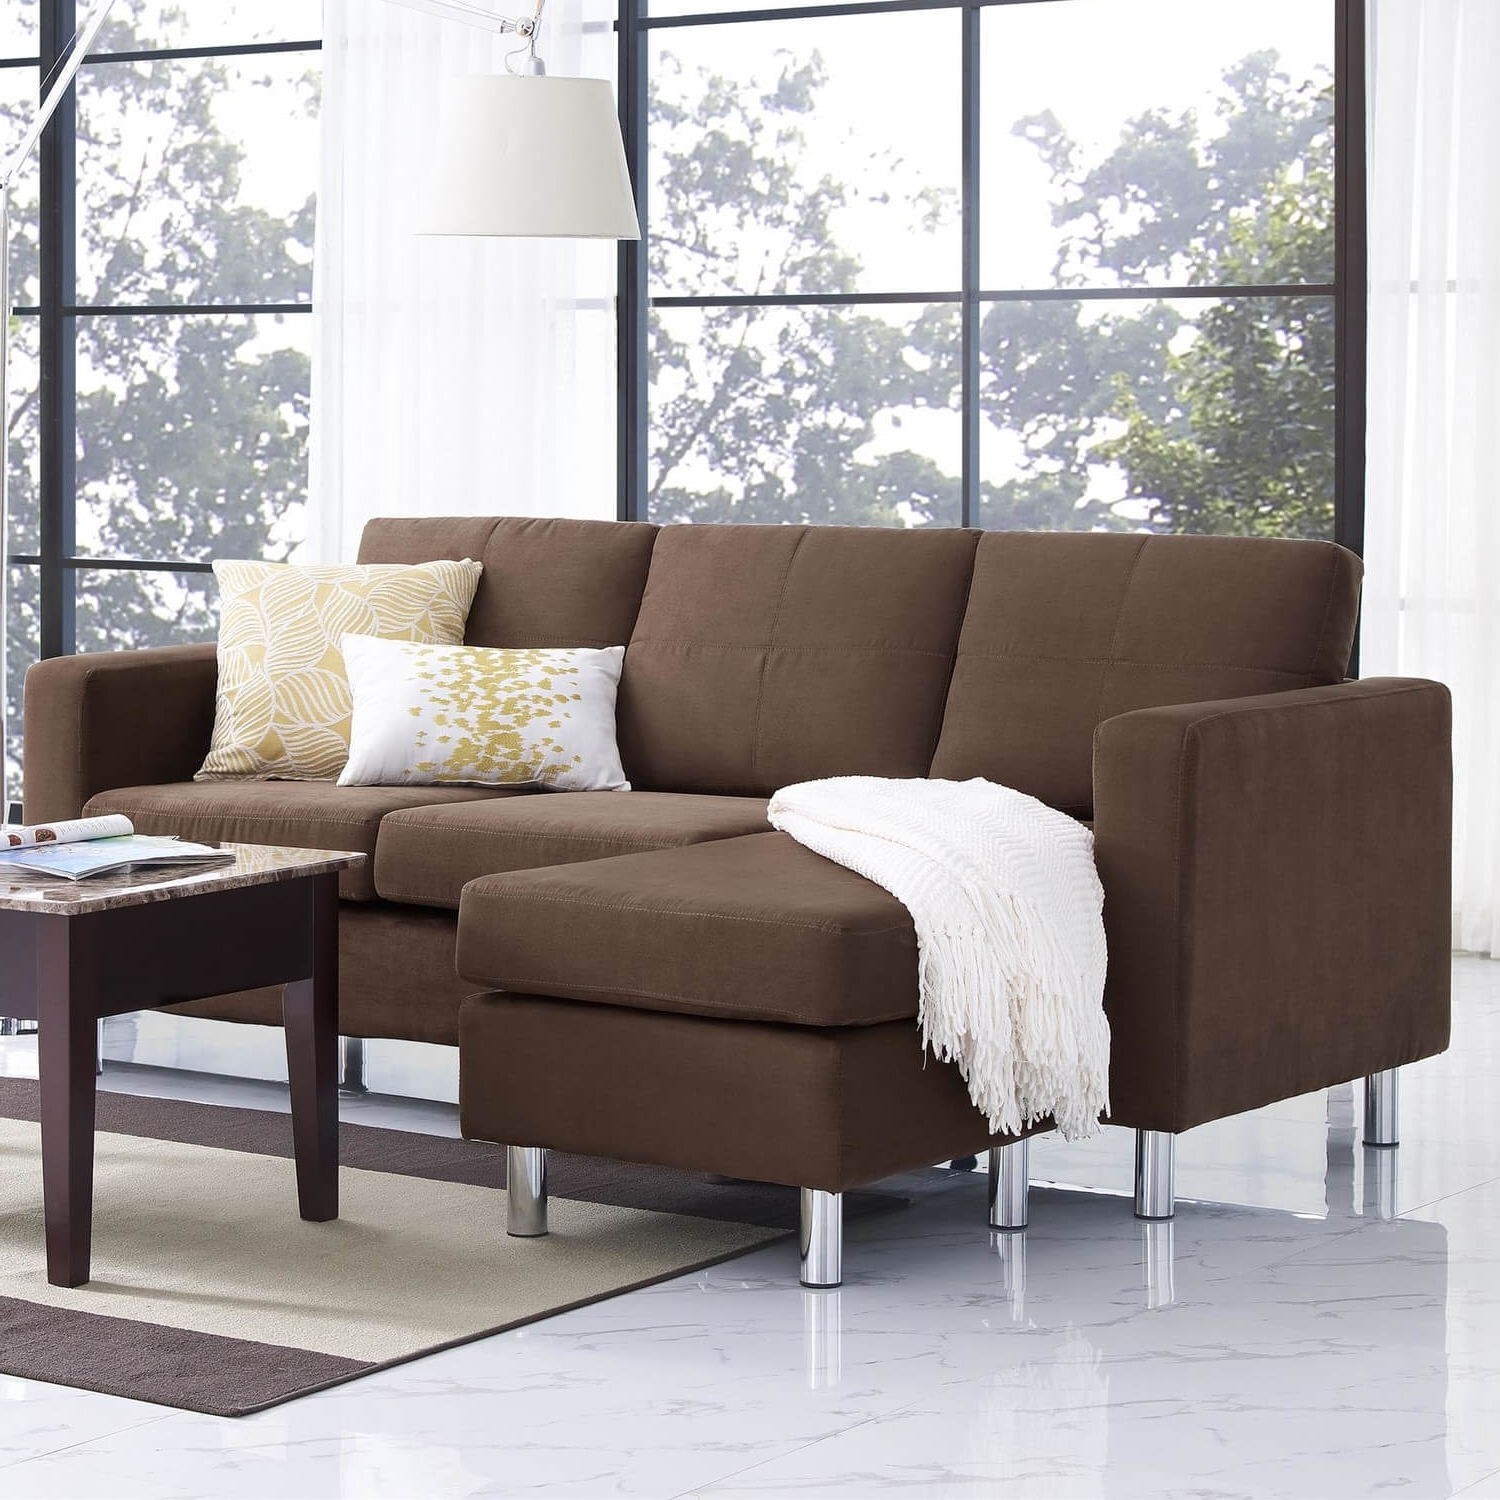 Ethan Allen Charlotte Nc Modern Italian Leather Sofa Ethan Allen For Latest Sectional Sofas At Charlotte Nc (View 9 of 20)